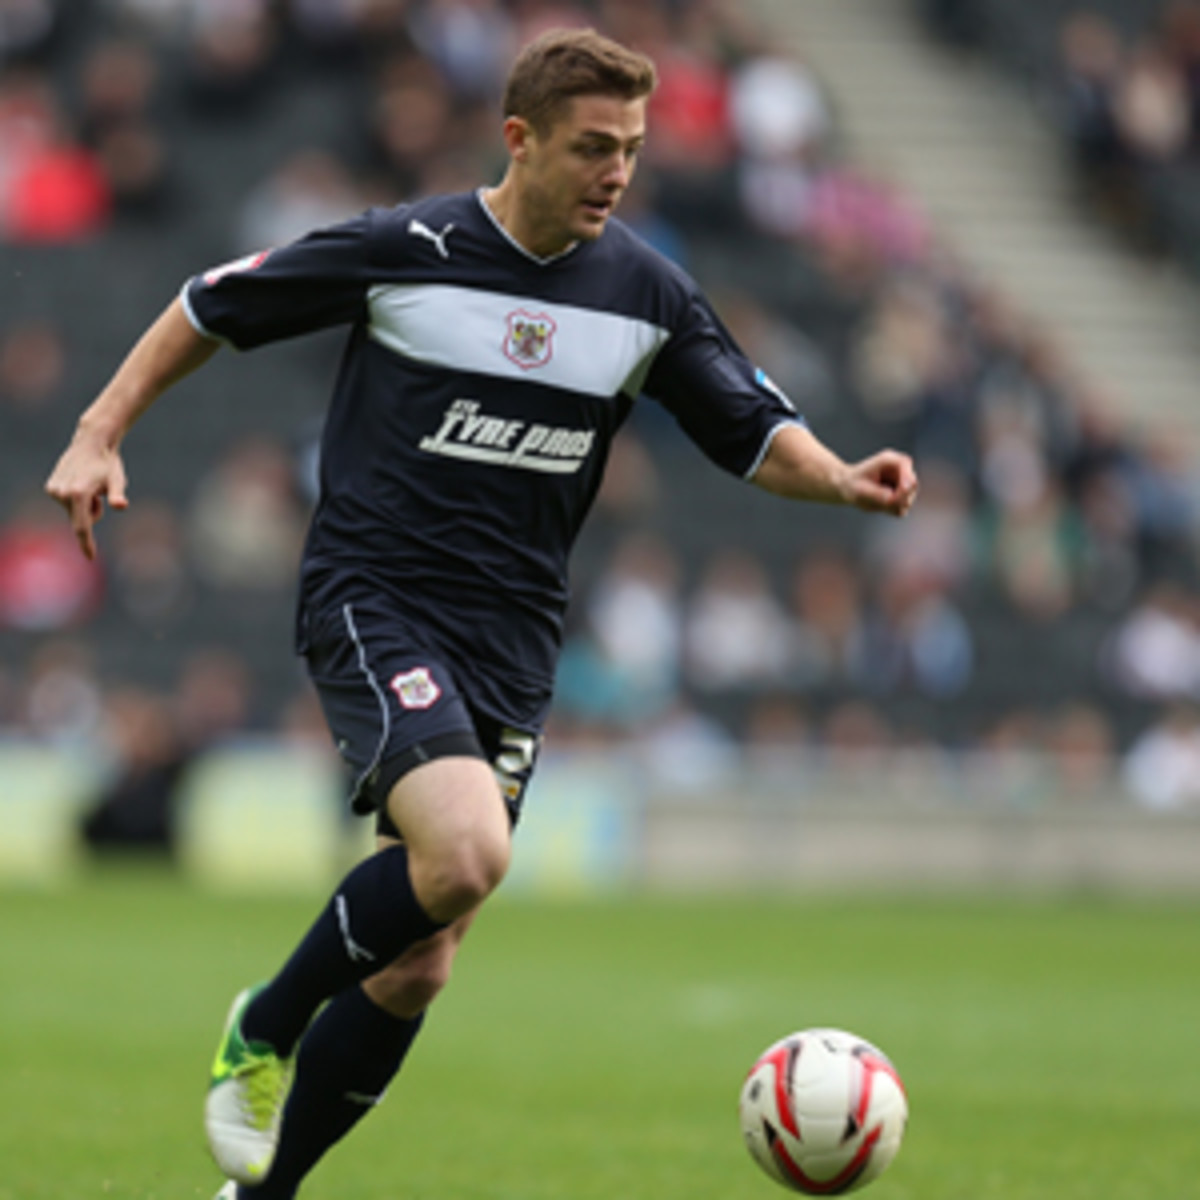 Robbie Rogers announced he was gay on his blog in January. (Pete Norton/Getty Images)